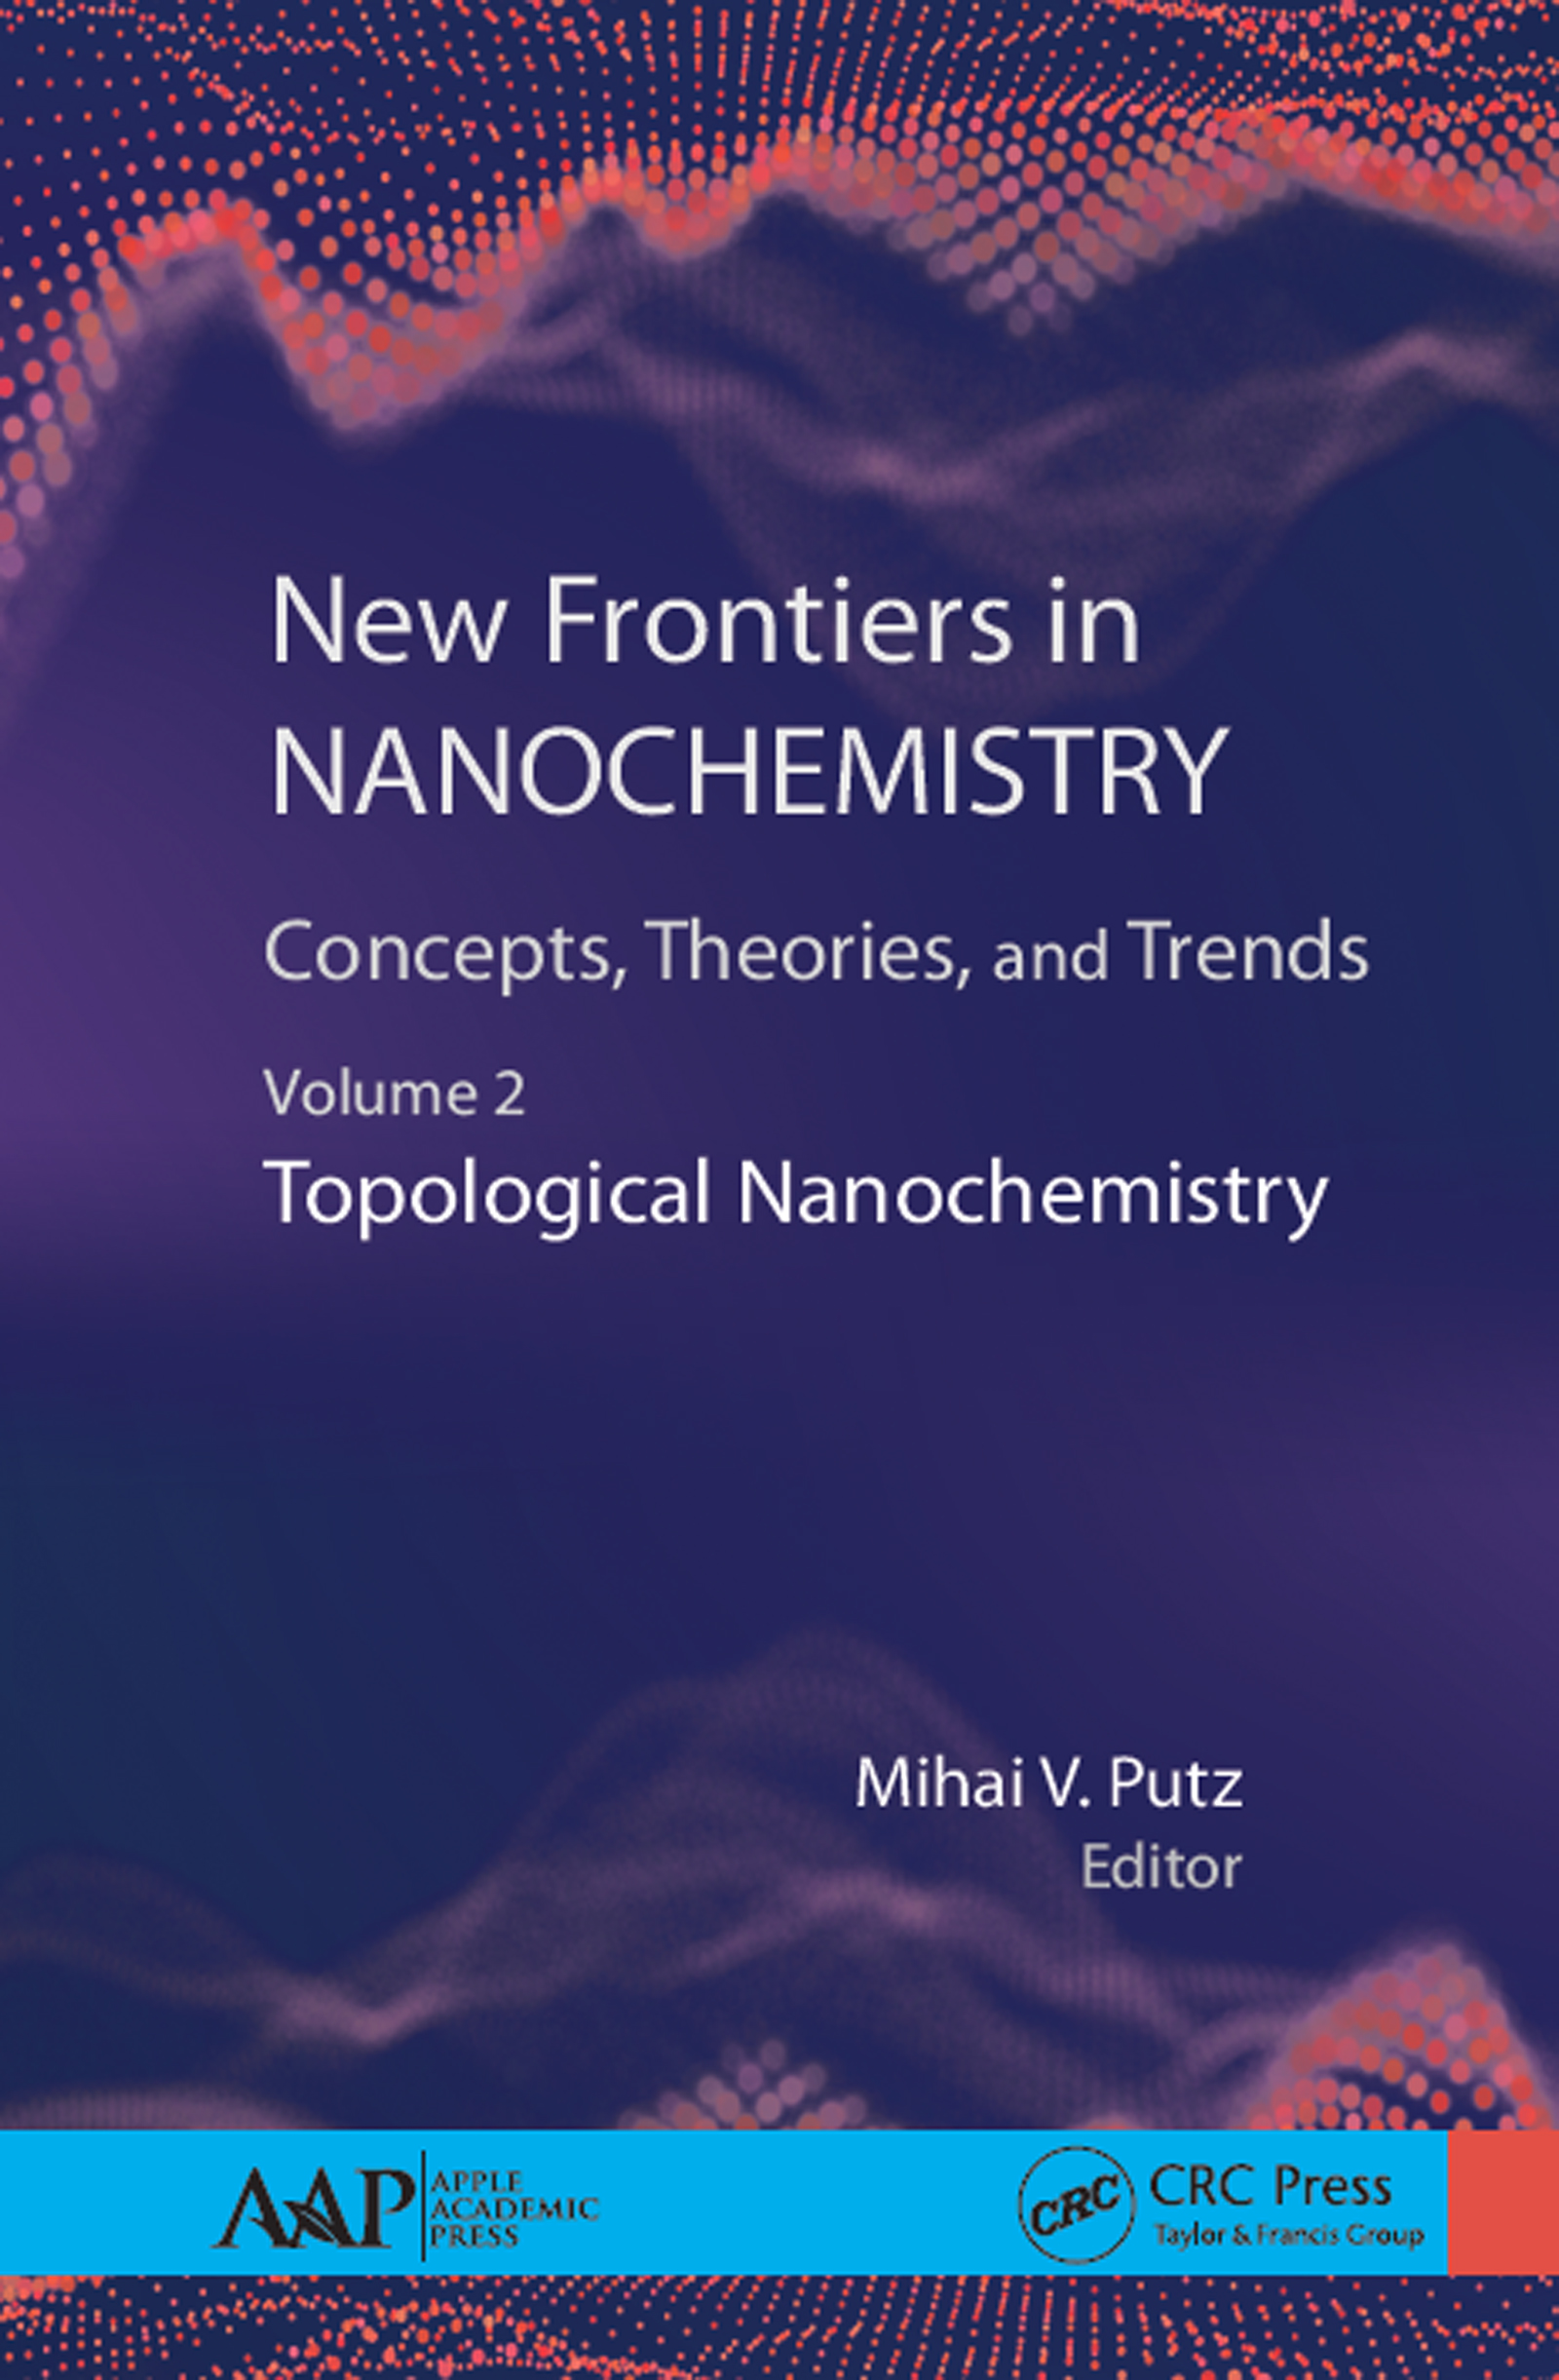 New Frontiers in Nanochemistry: Concepts, Theories, and Trends